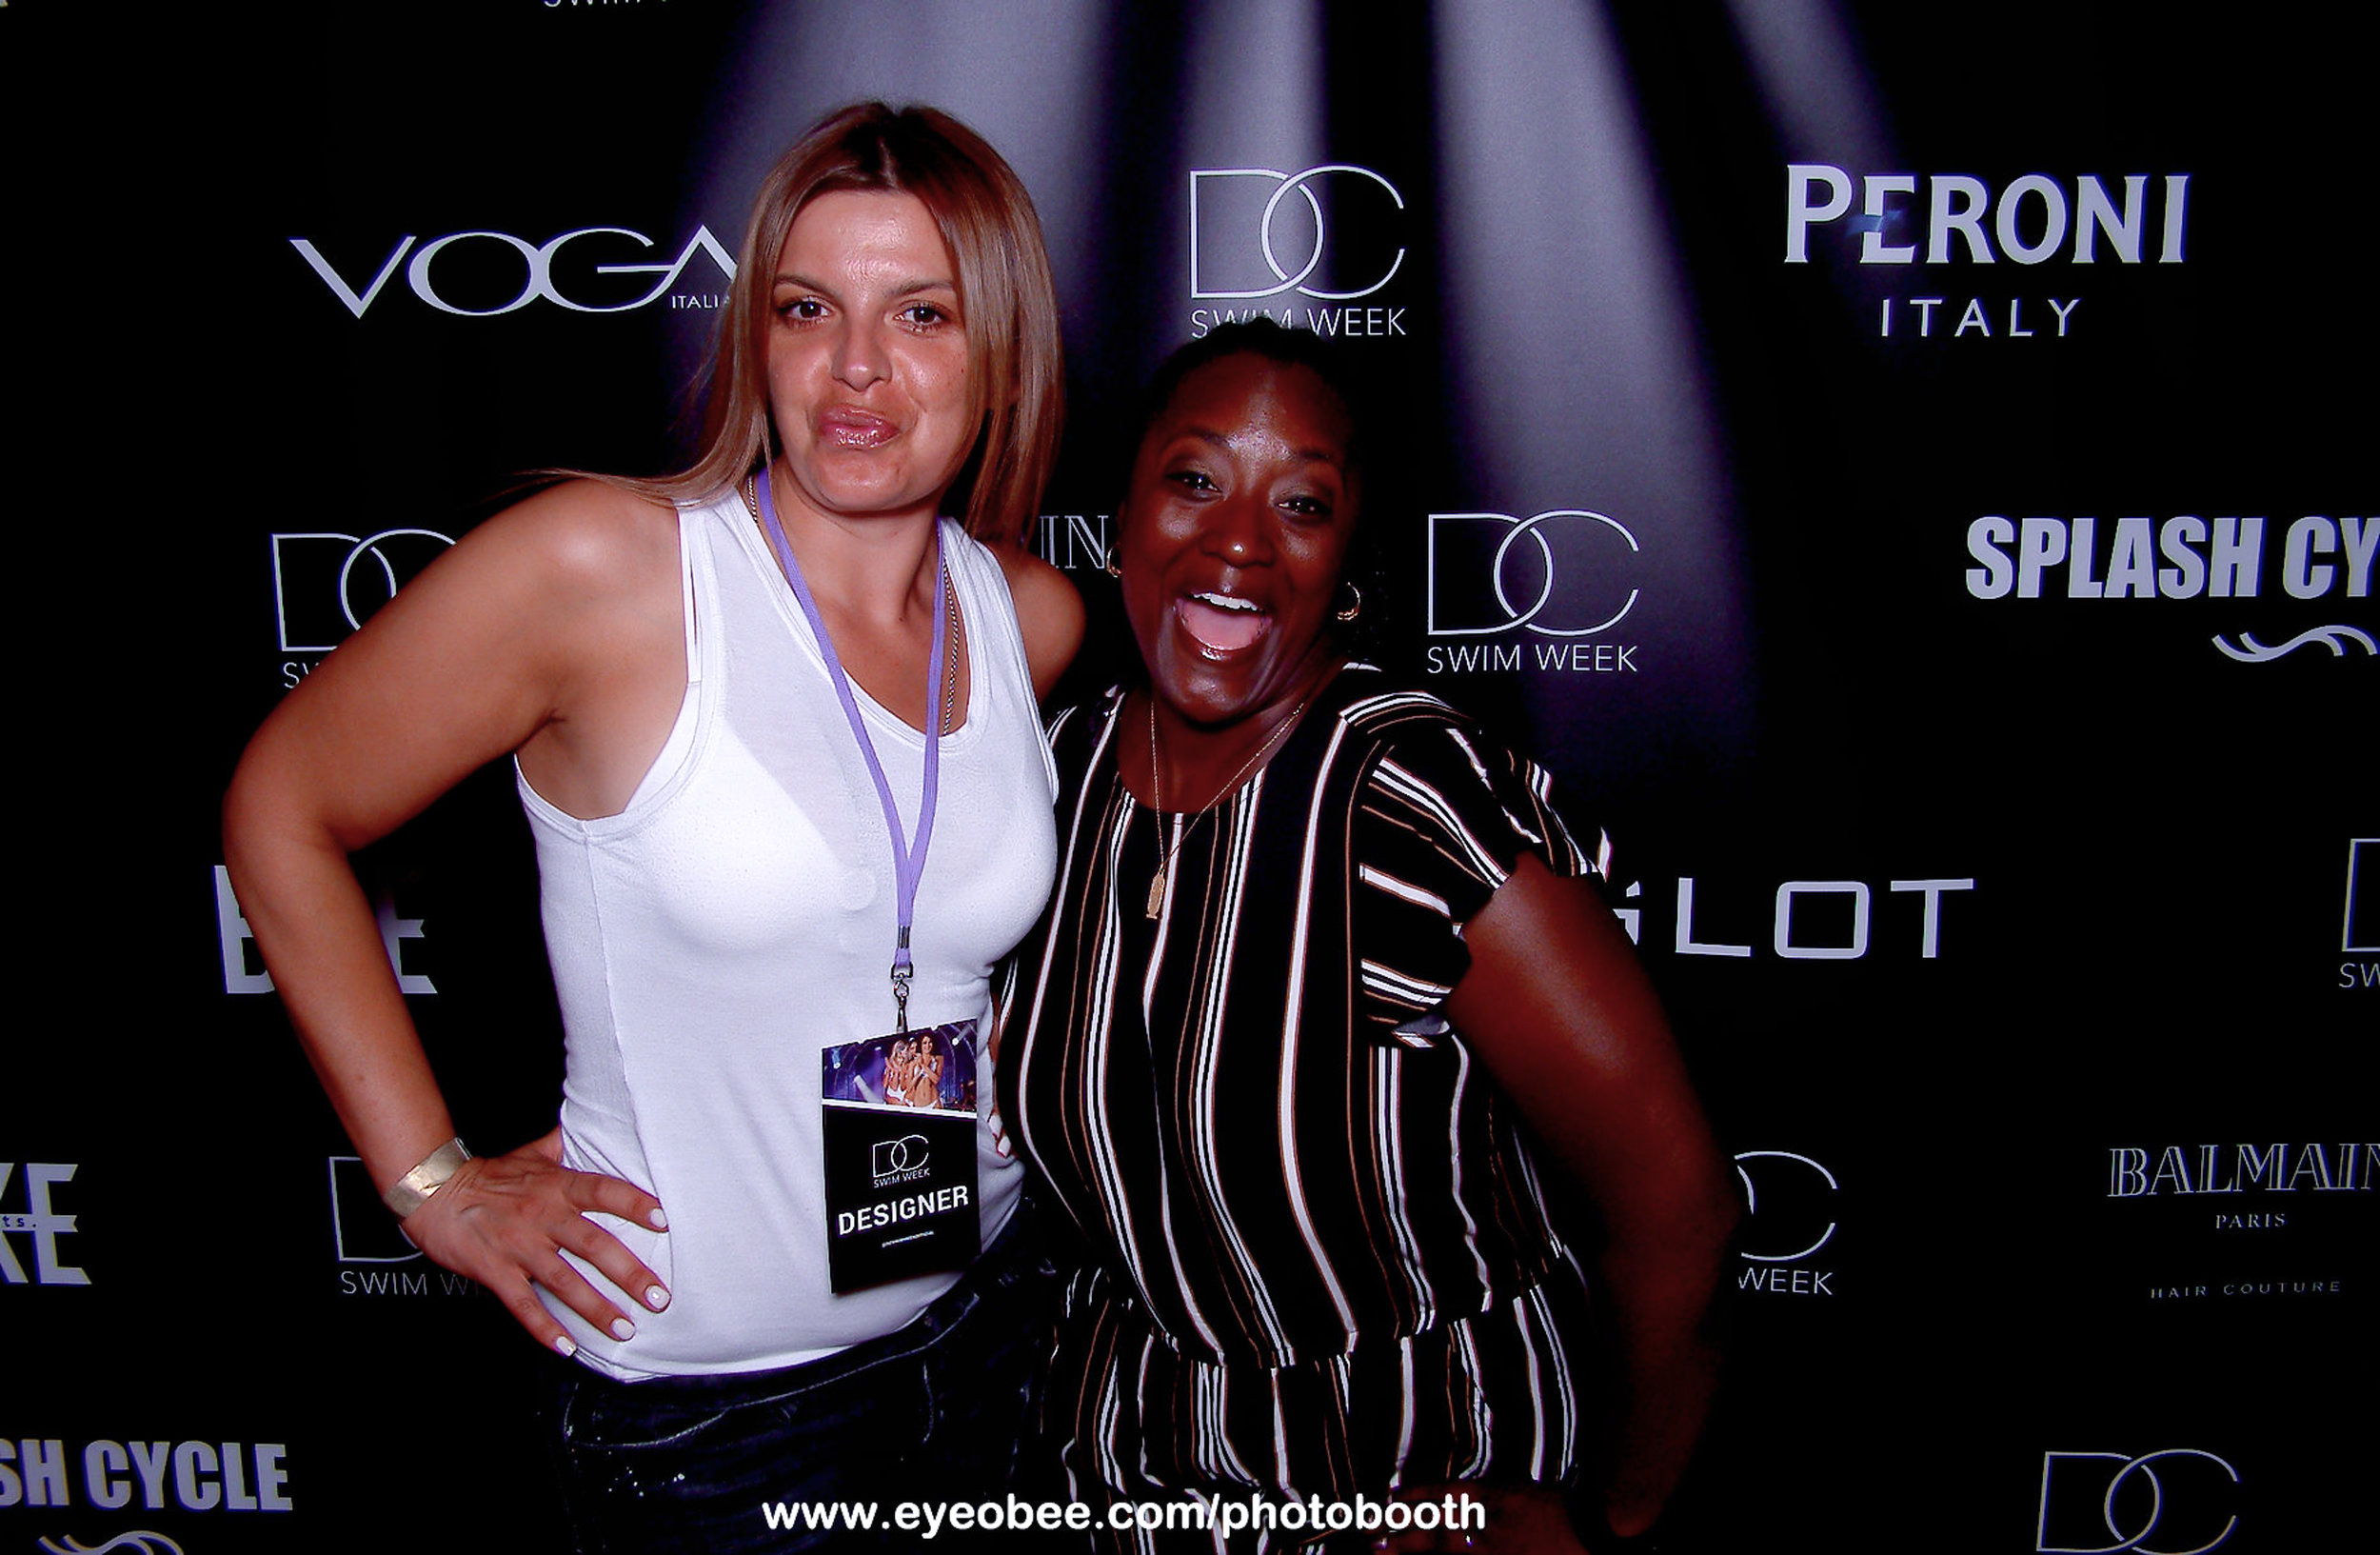 eyeobee PhotoBooth - DCSW-31.jpg